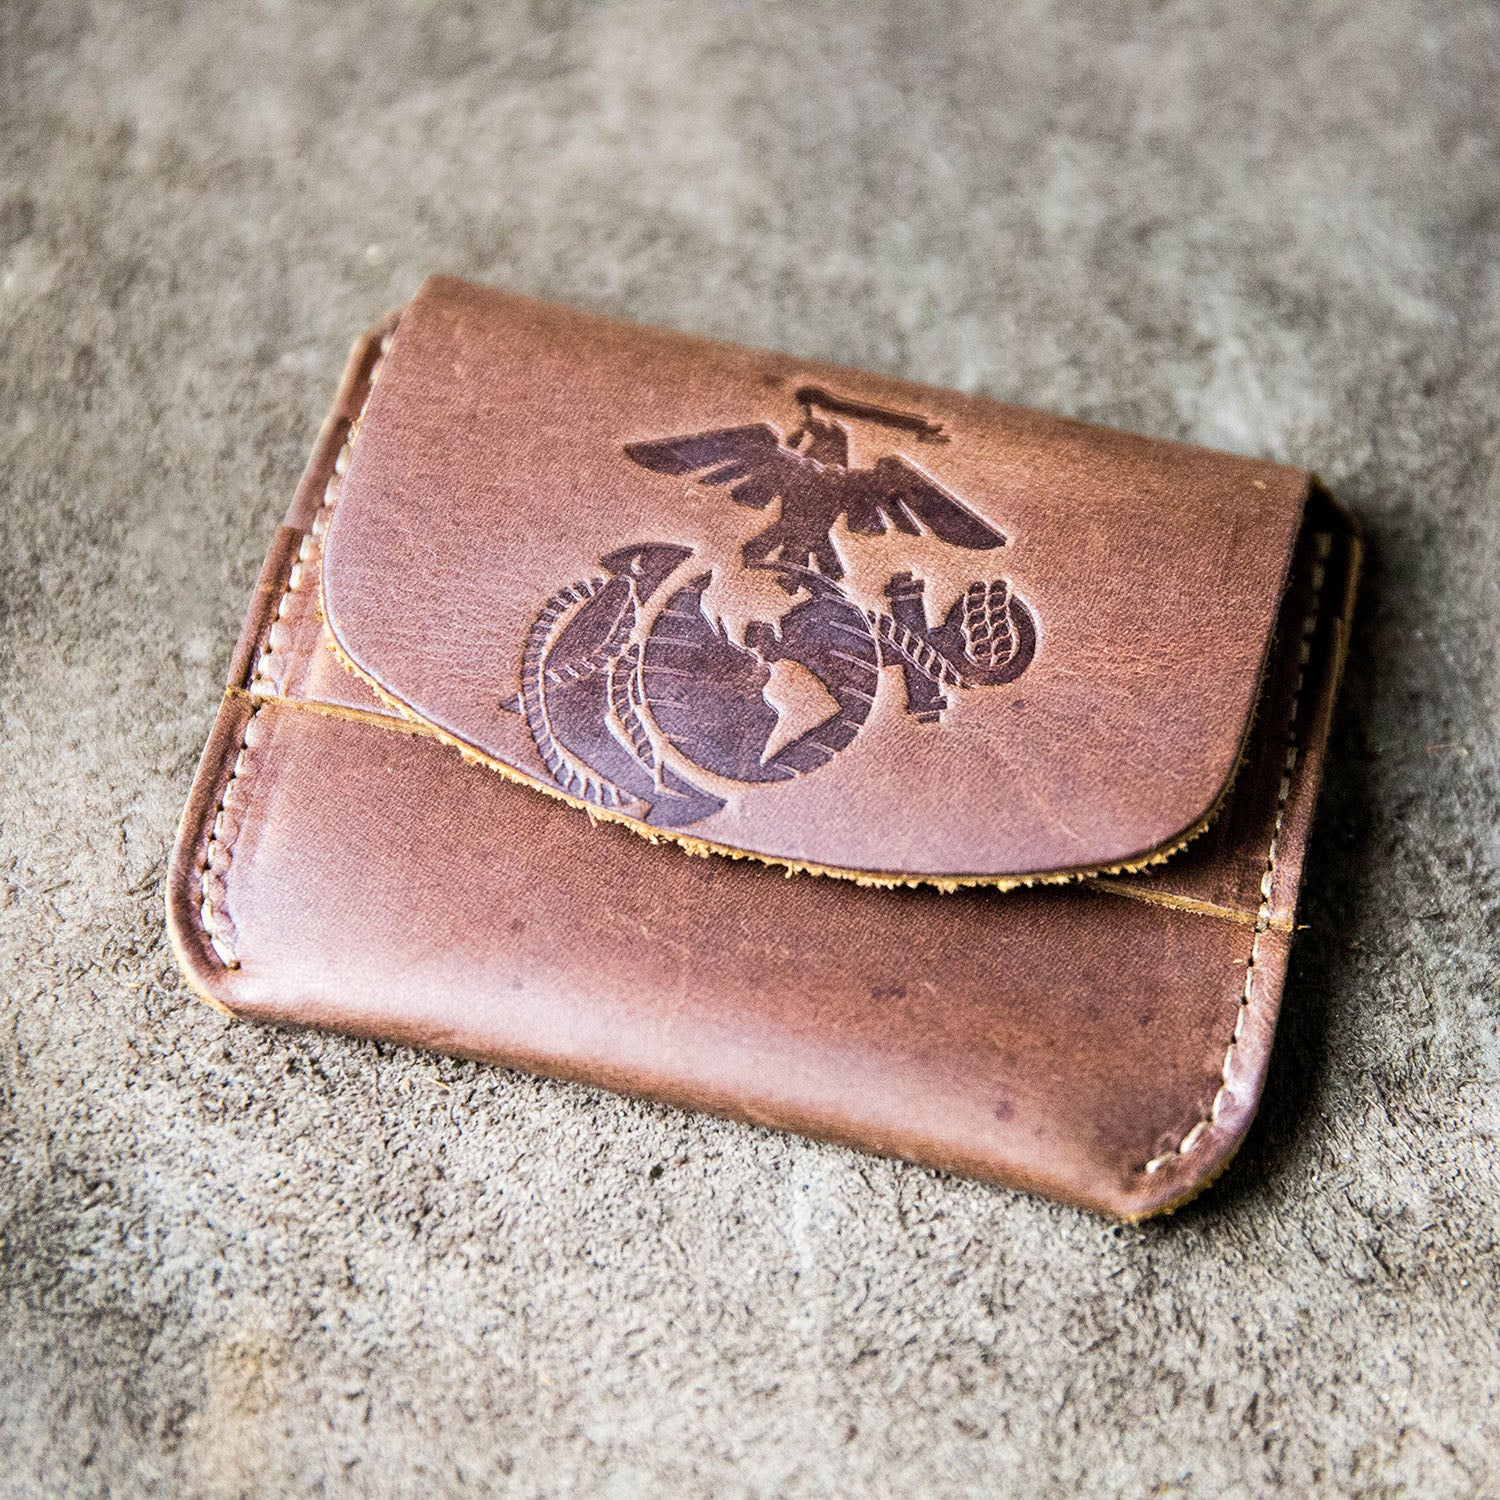 The Officially Licensed Marine Corps Fine Leather Front Pocket Wallet with Flap Closure